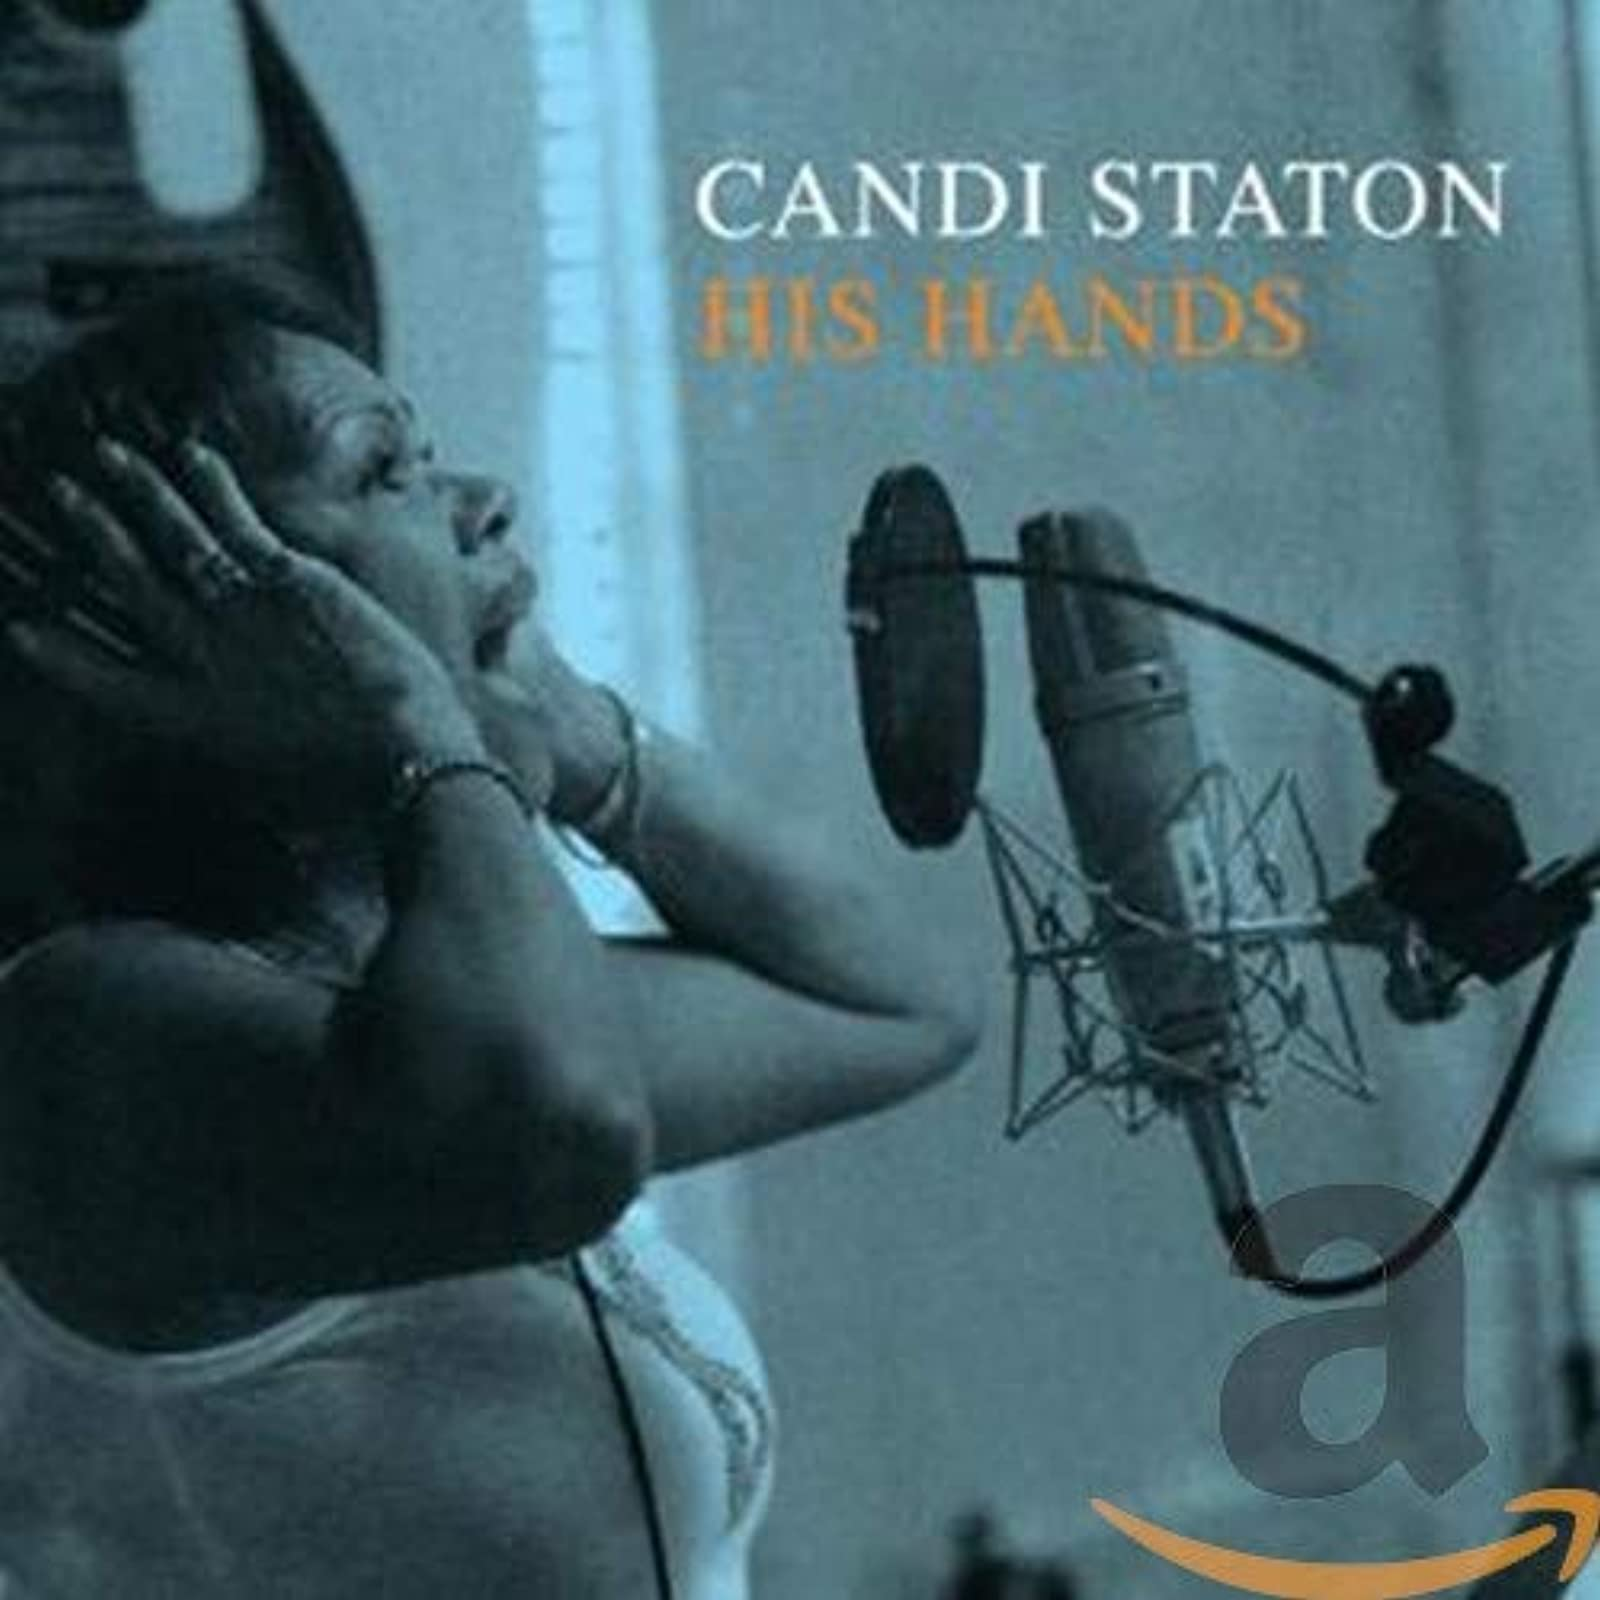 His Hands By Candi Staton On Audio CD Album 2006